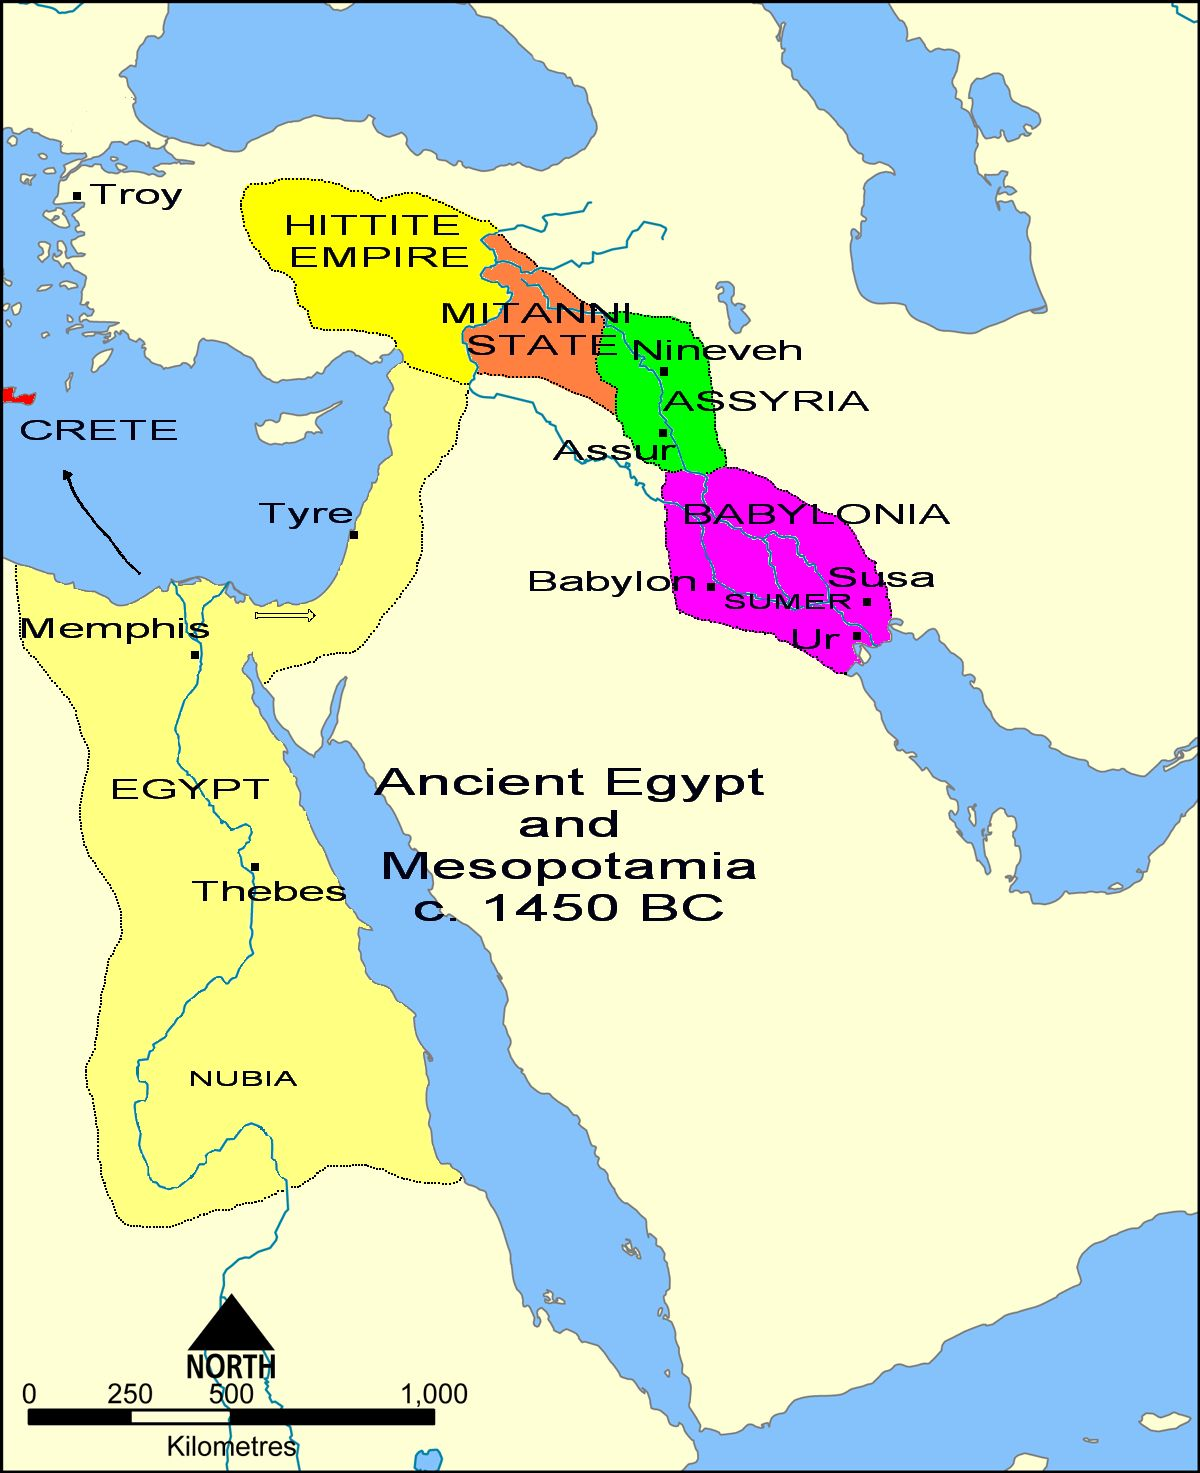 Map of assyrian assyrian 2600 700 bce pinterest overview map of the ancient near east in the c bc middle assyrian period showing the core territory of assyria wits major cities assur nineveh wedged gumiabroncs Choice Image